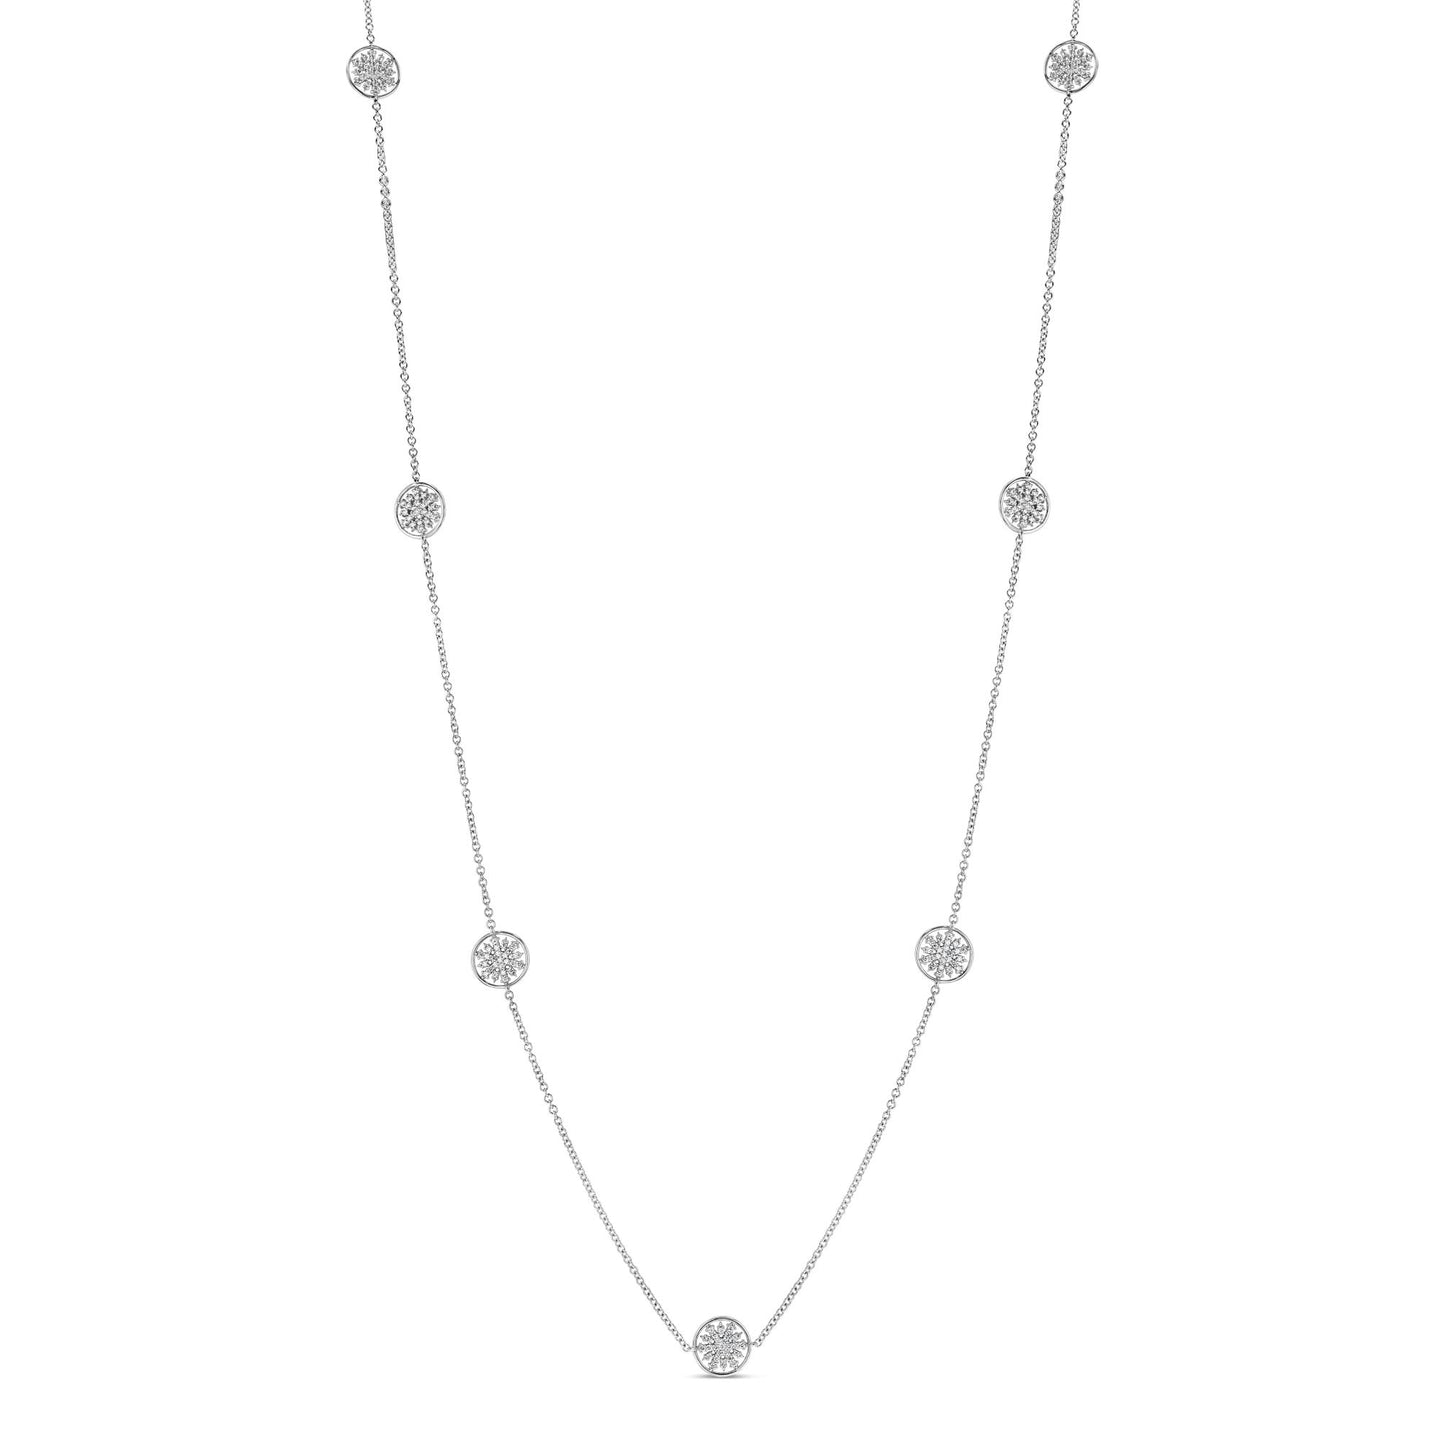 Snowflake Station Necklace - Best & Co.